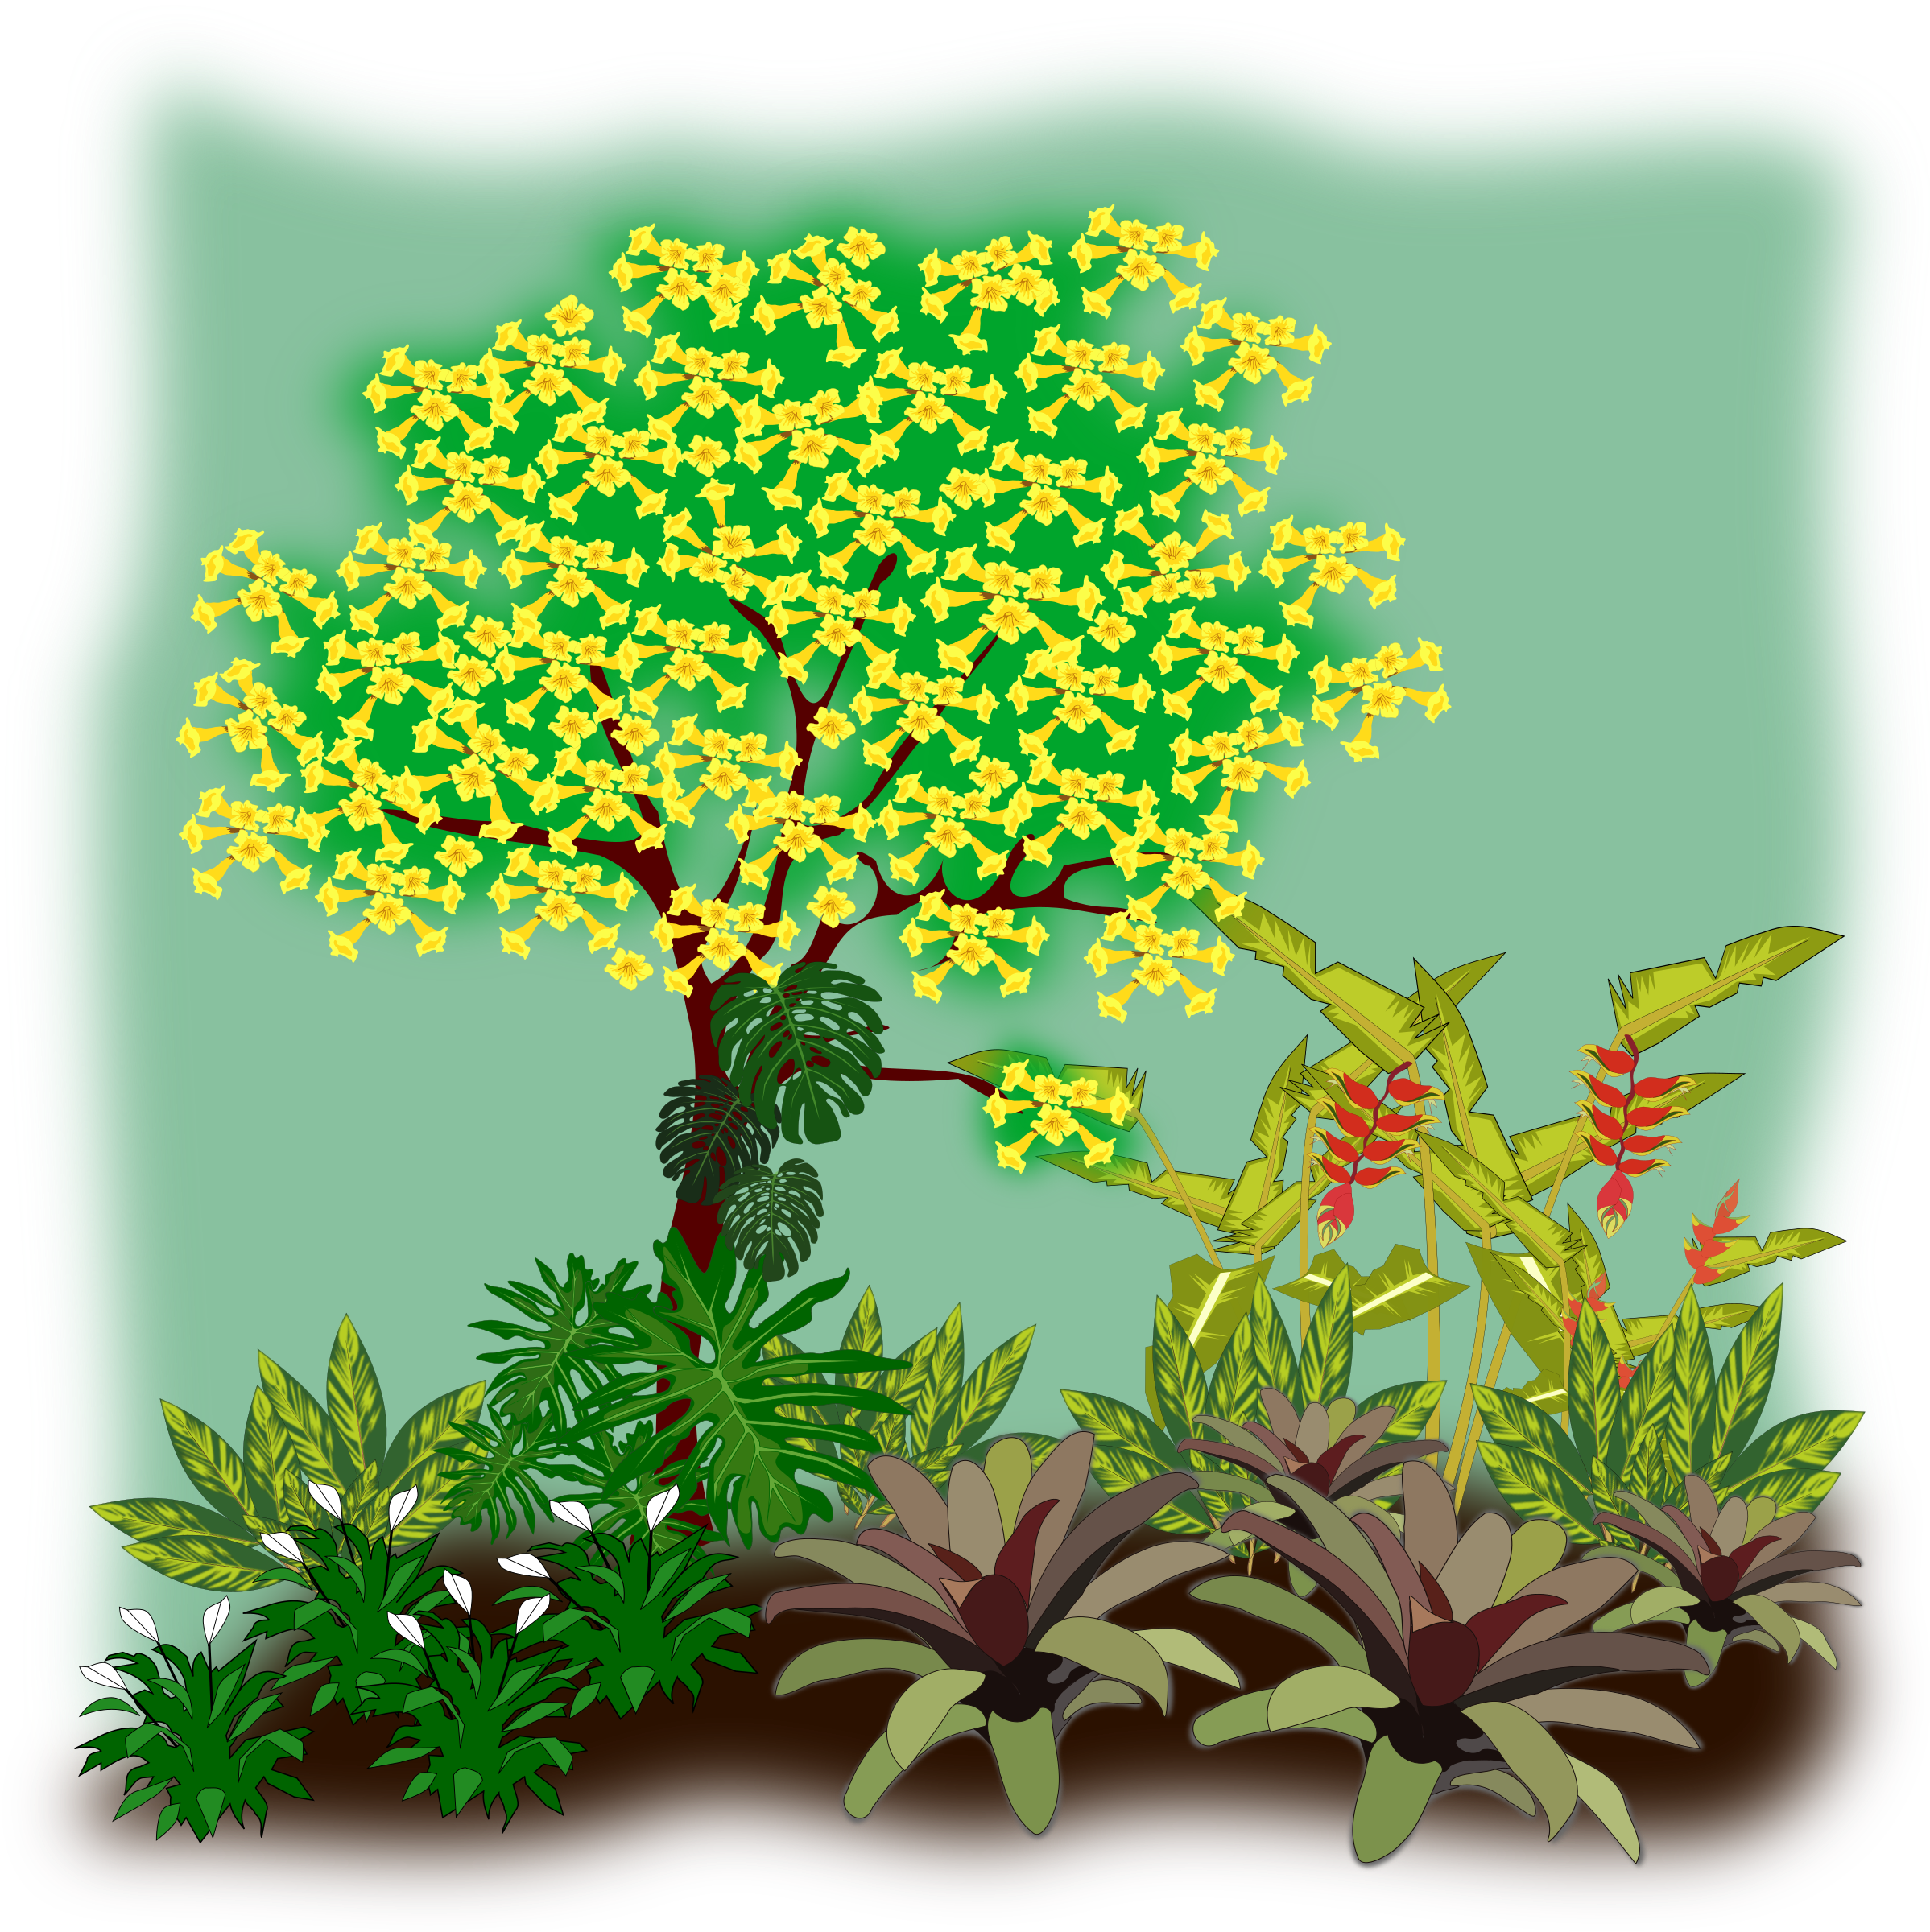 Landscaping drawing art. Free cliparts download clip